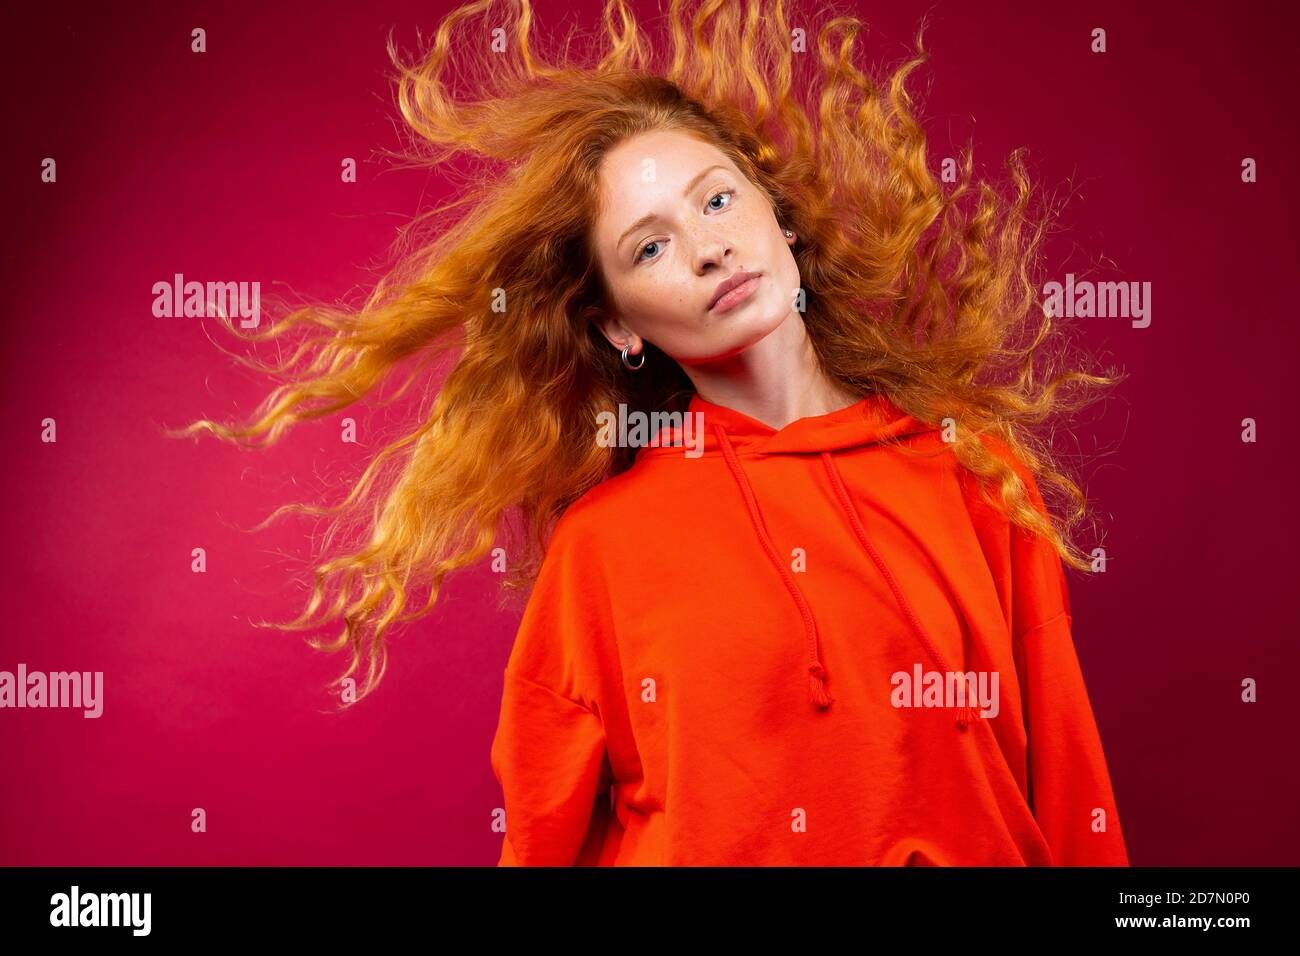 Curly Red Hair Freckles Teenager High Resolution Stock Photography And Images Alamy